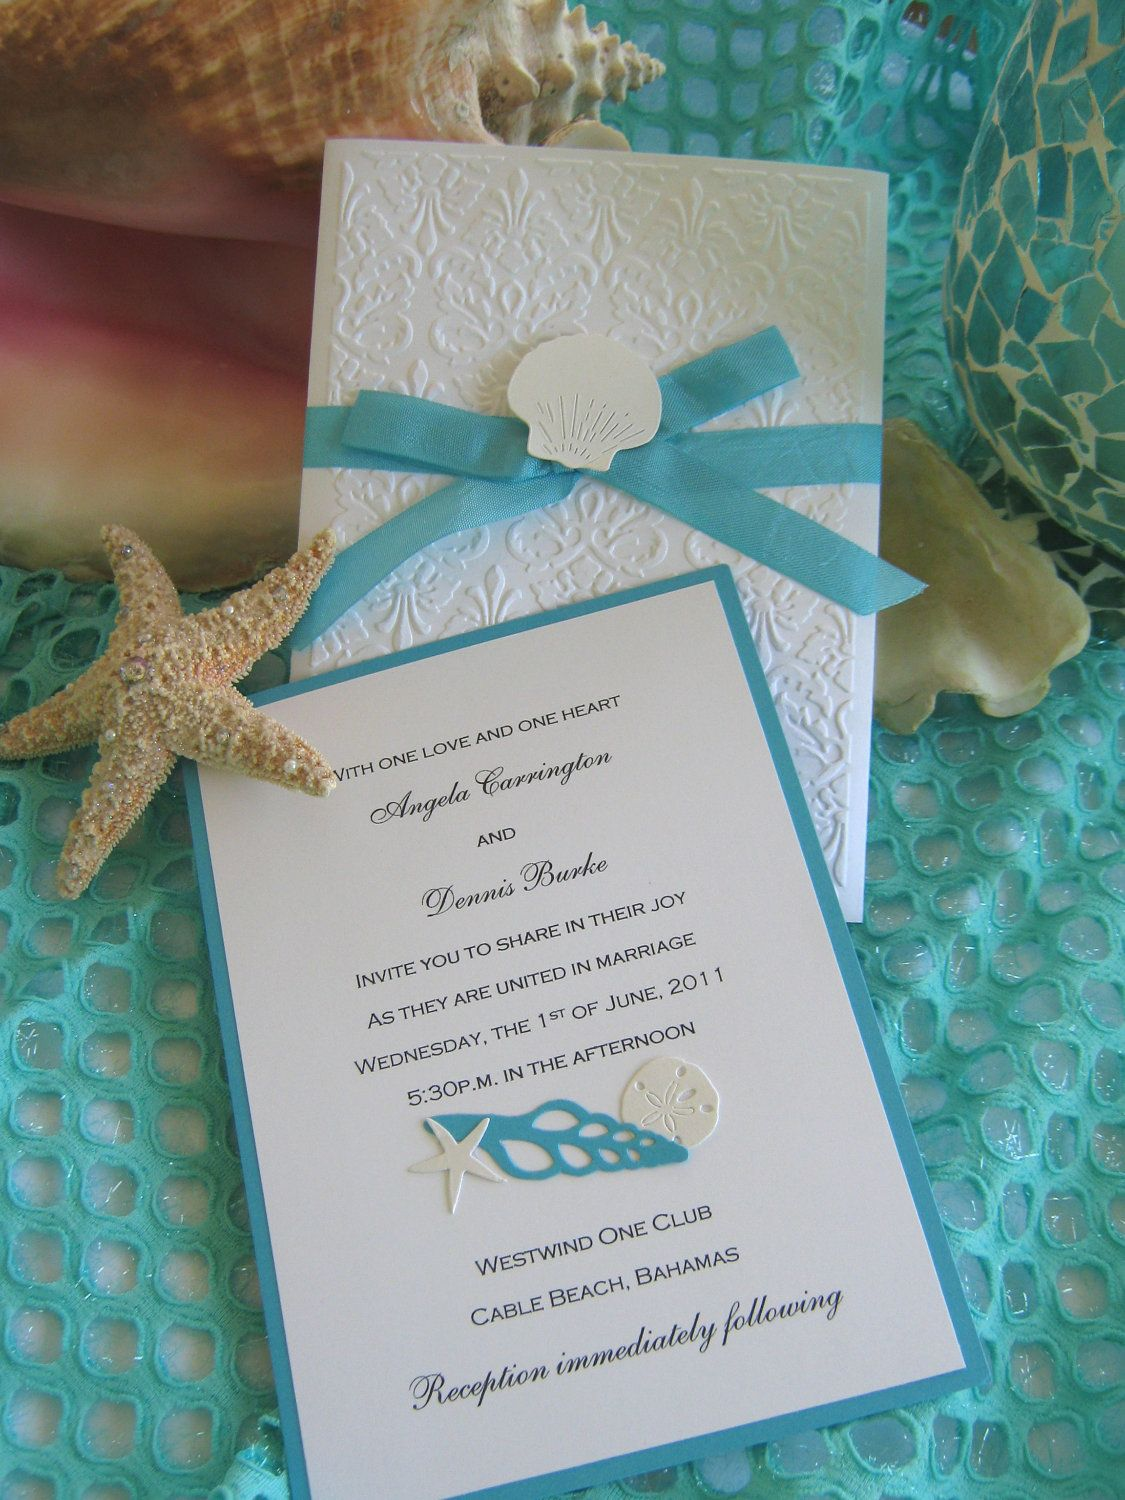 beach wedding chair decoration ideas moroccan chairs for sale seashell and lace invitation. $45.00, via etsy. | pinterest ...